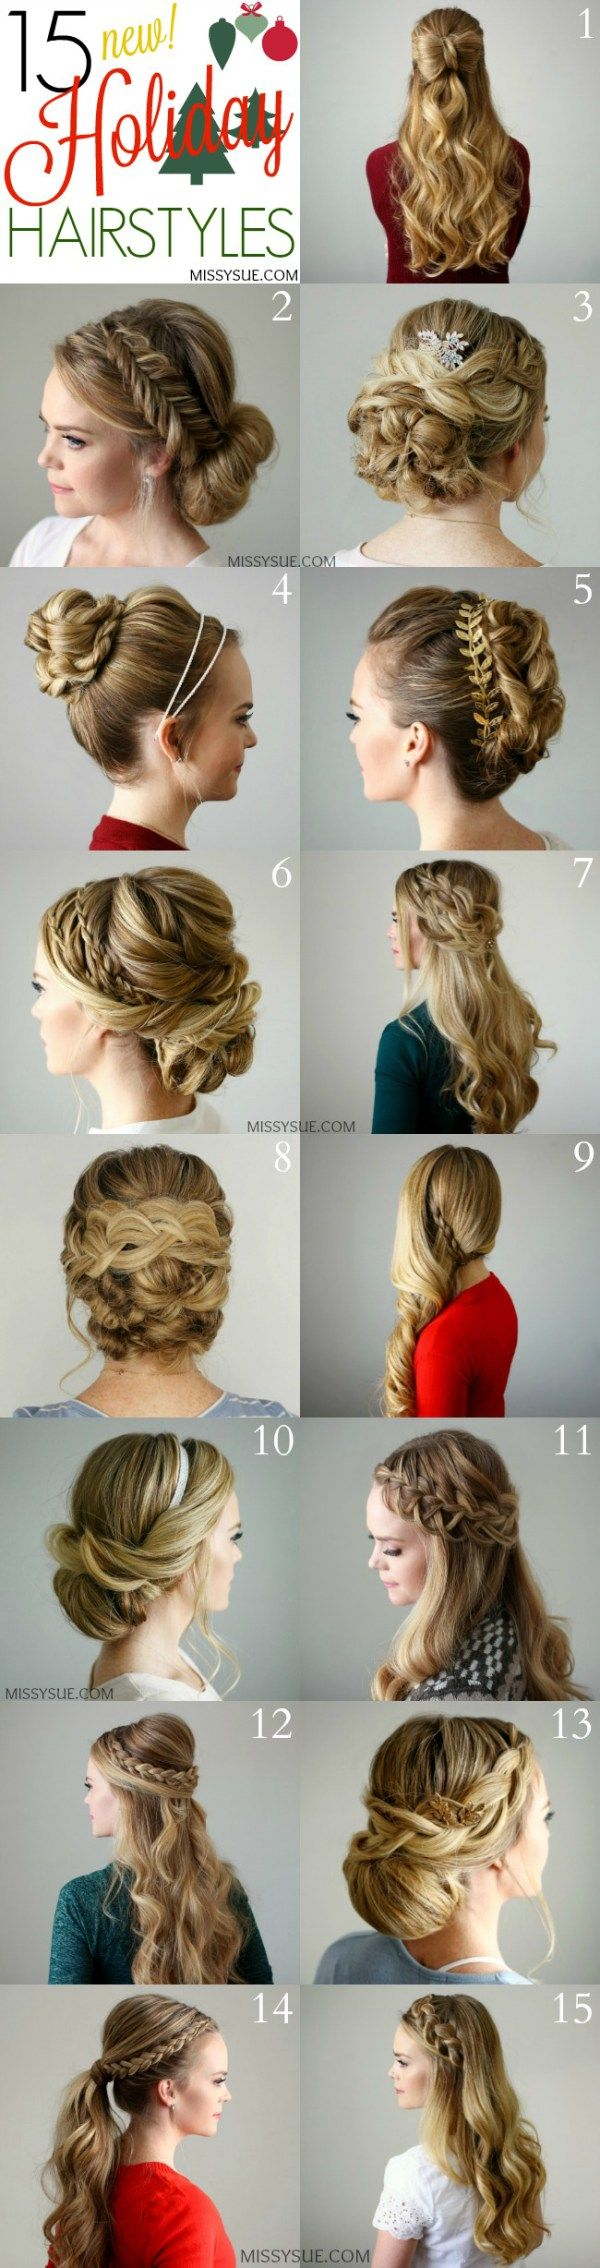 15 holiday hairstyles | women's world | hair styles, hair